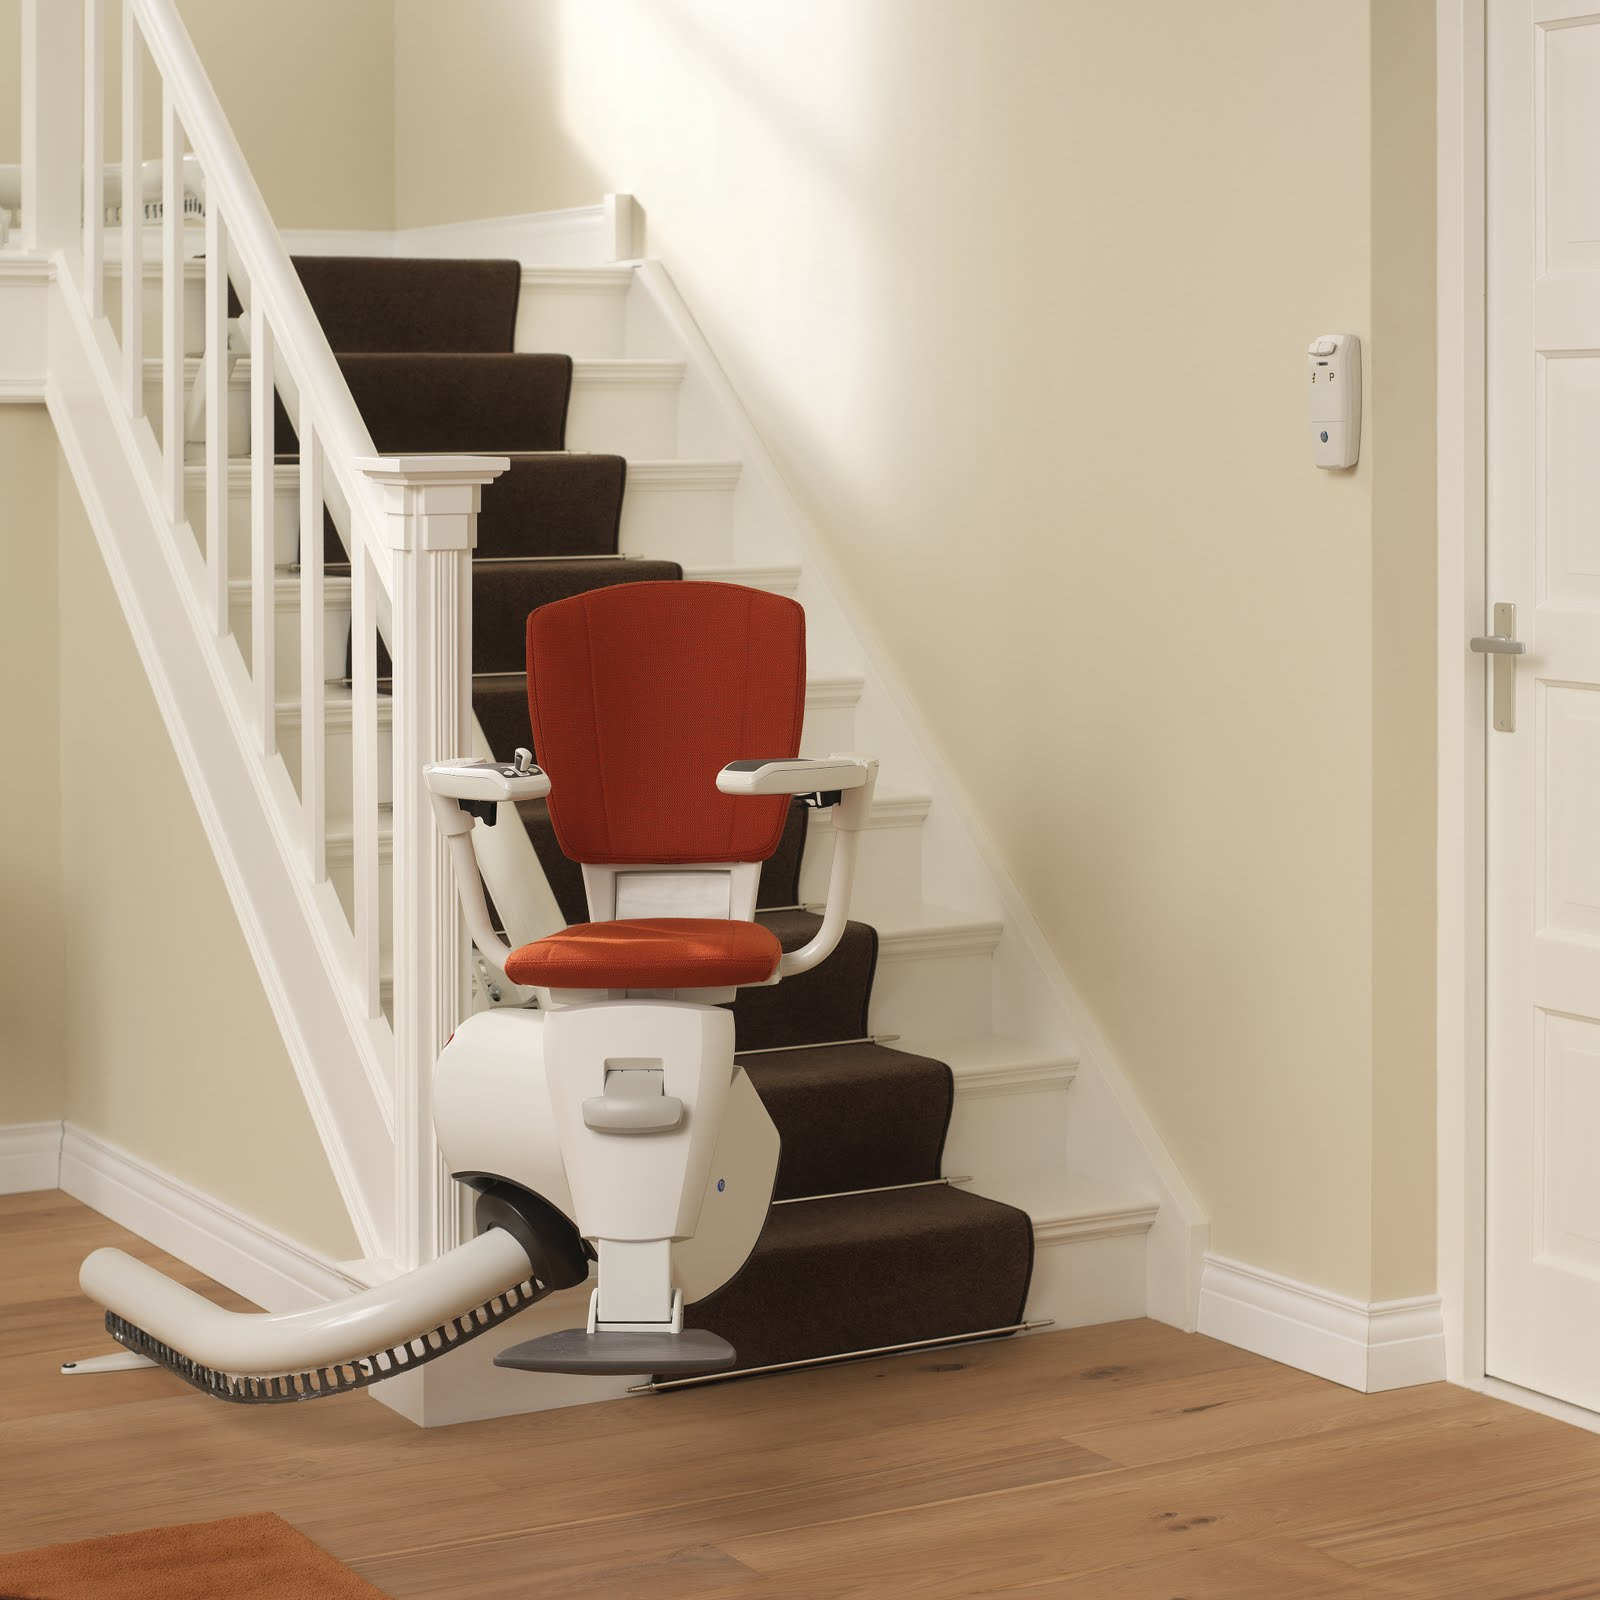 Treppenlift Thyssenkrupp Flow 2 Ersatzteile Stair Lifts Flow 2 Stairlifts For Curved Stairs